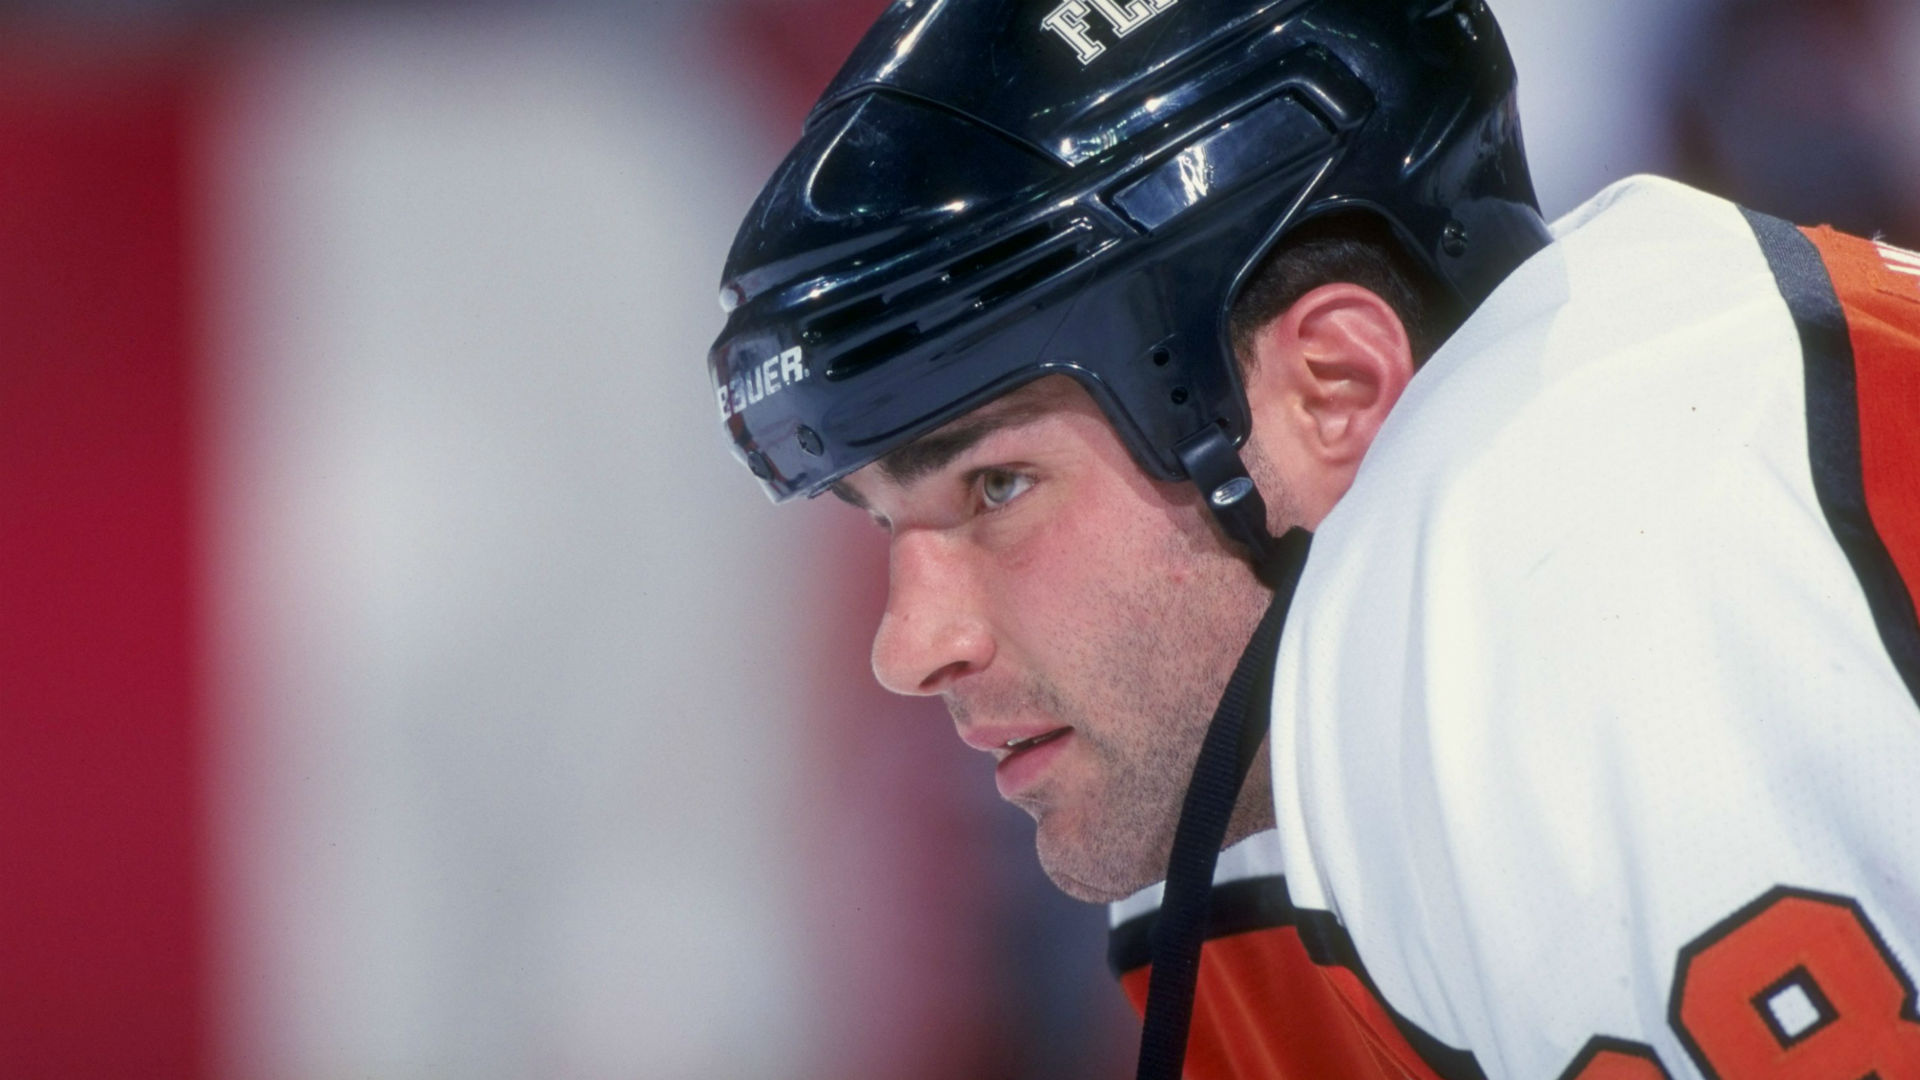 who is eric lindros dating In philadelphia, you either love eric lindros or you hate the guy but brind'amour wasn't polarizing like that the dude was the definition of a work horse and there's not a single flyers fan that wasn't crushed when he was traded to carolina.